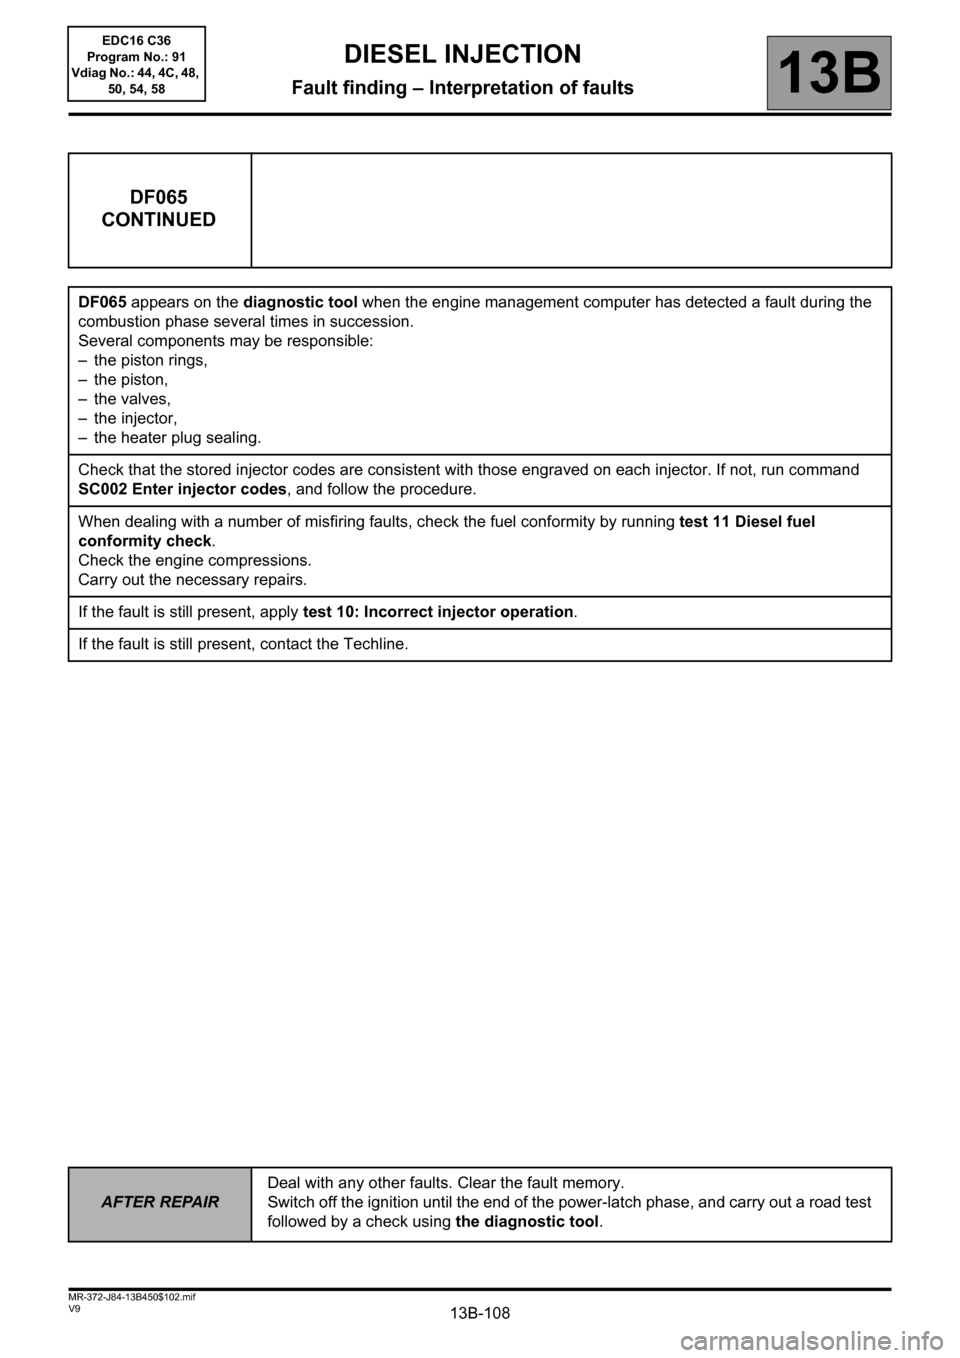 RENAULT SCENIC 2011 J95 / 3.G Engine And Peripherals EDC16C36 Workshop Manual, Page 108